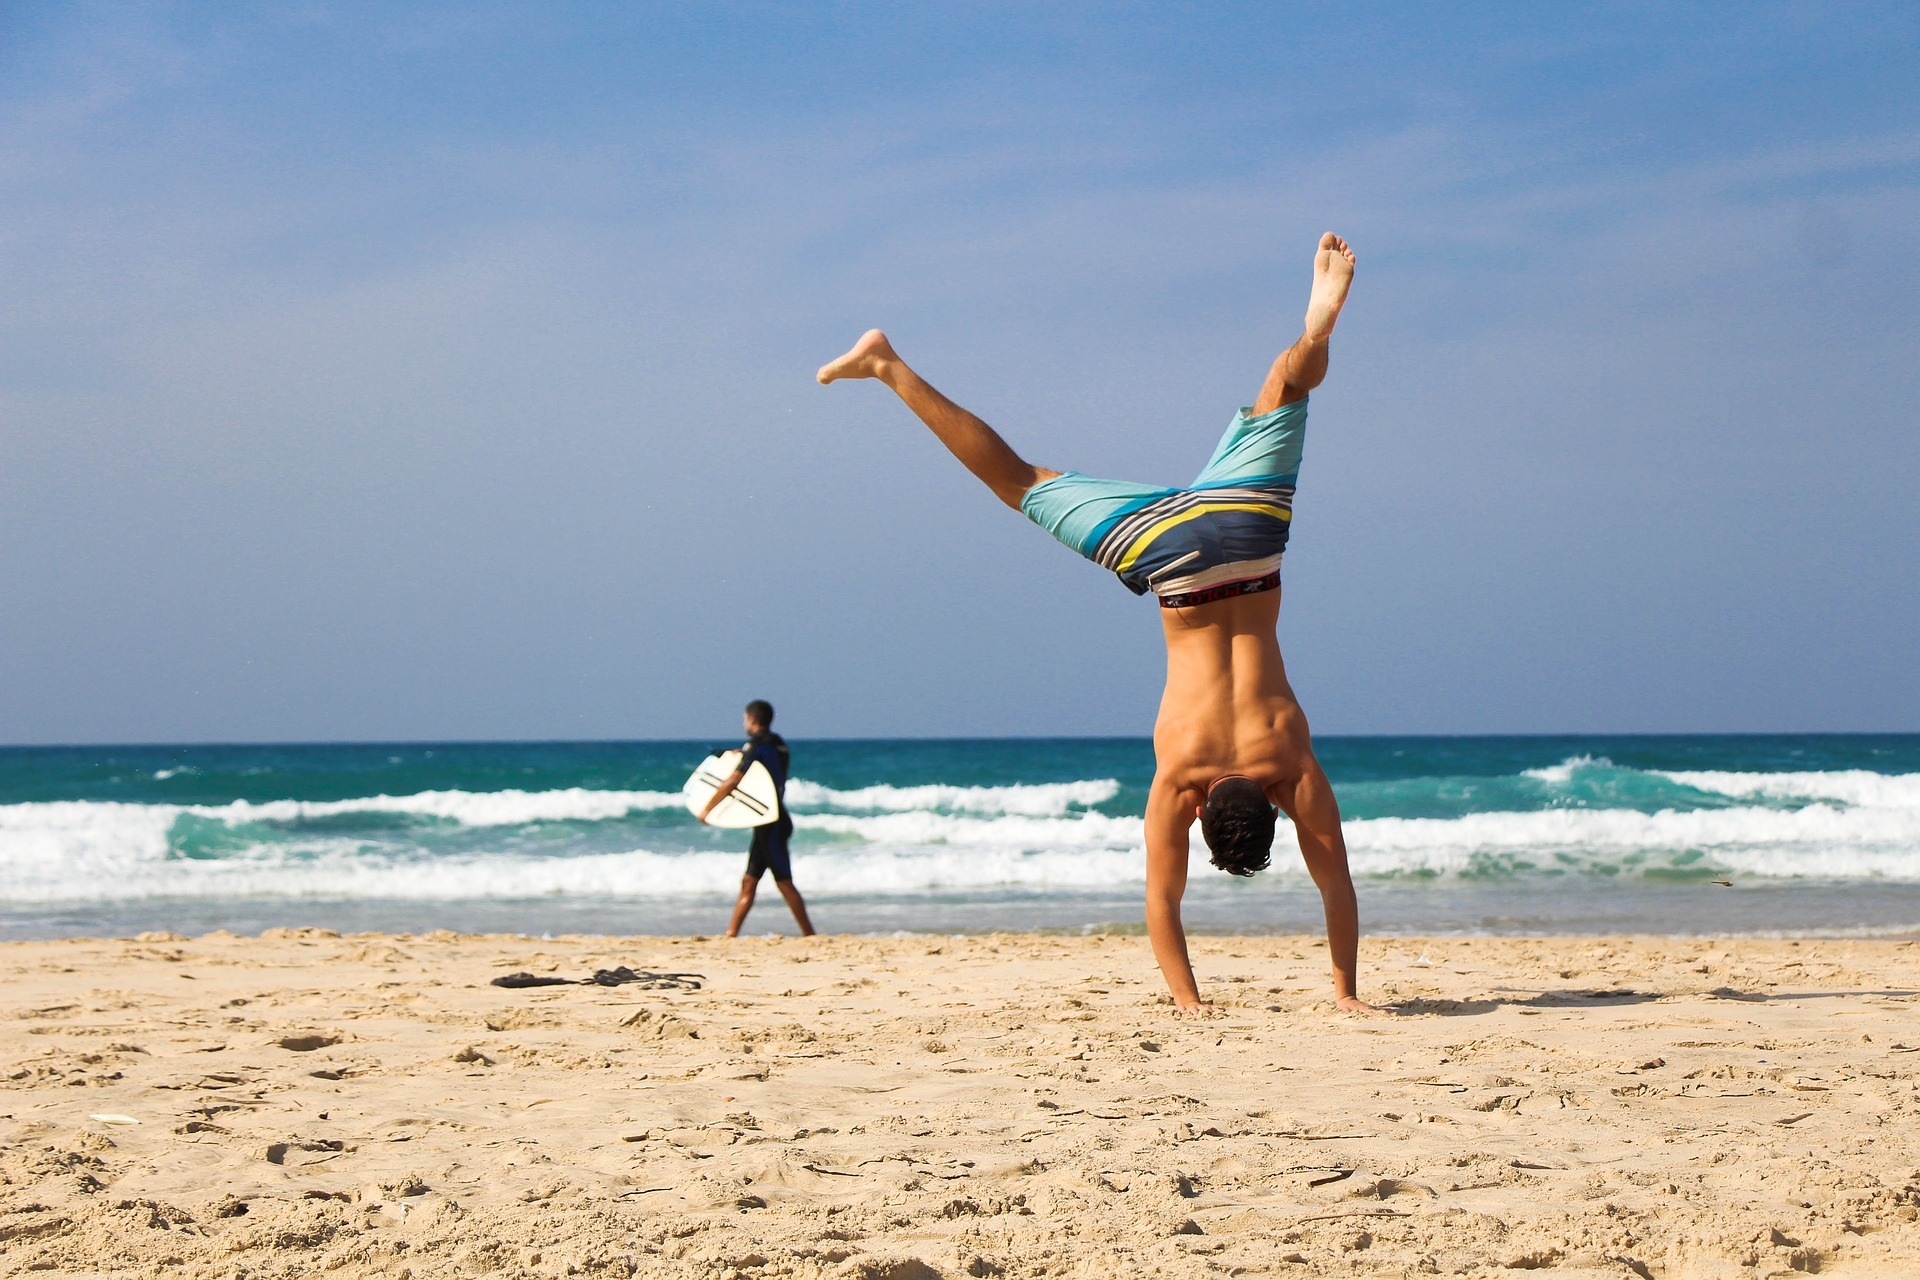 guy doing handstand on the beach